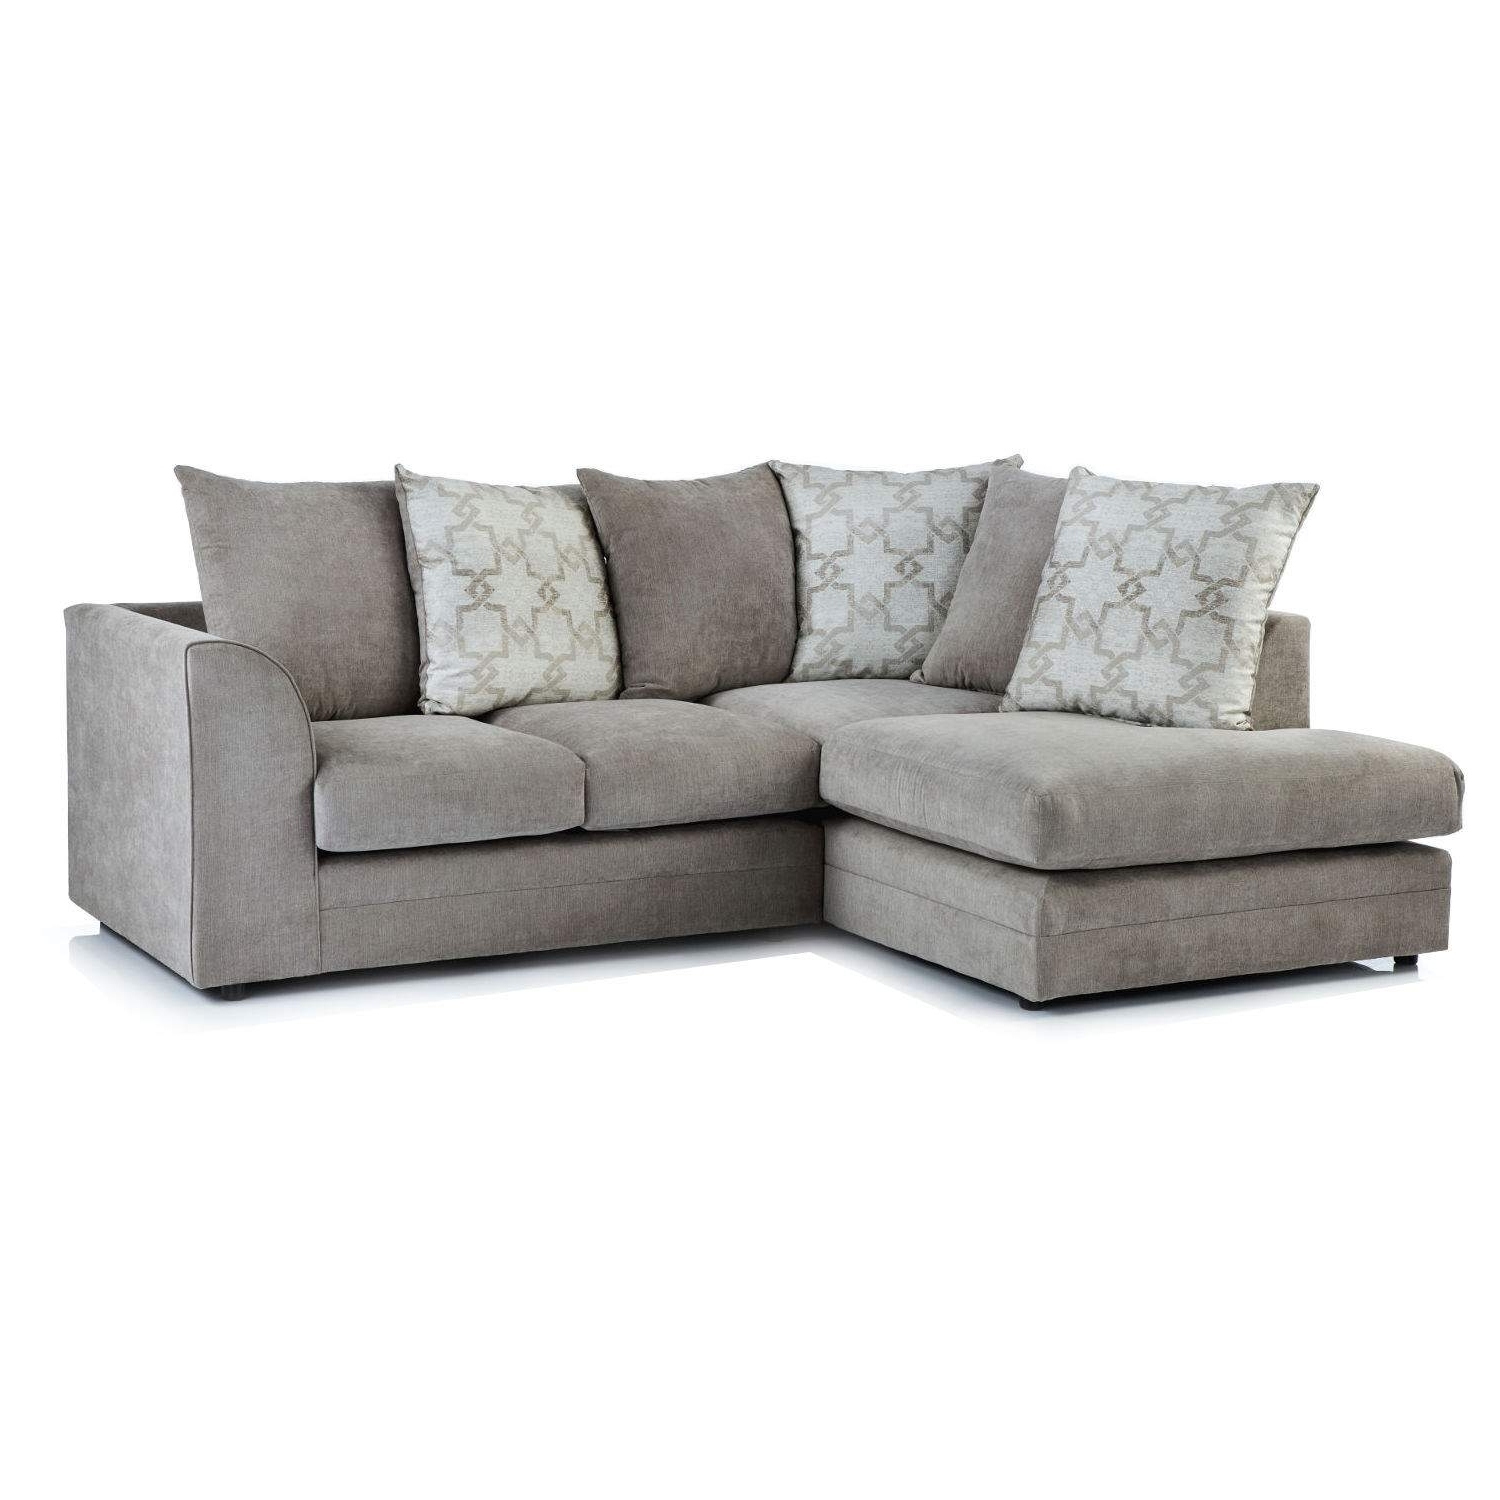 Well Liked Washington Fabric Corner Chaise Sofa – Next Day Delivery Regarding Chaise Sofas (View 15 of 15)